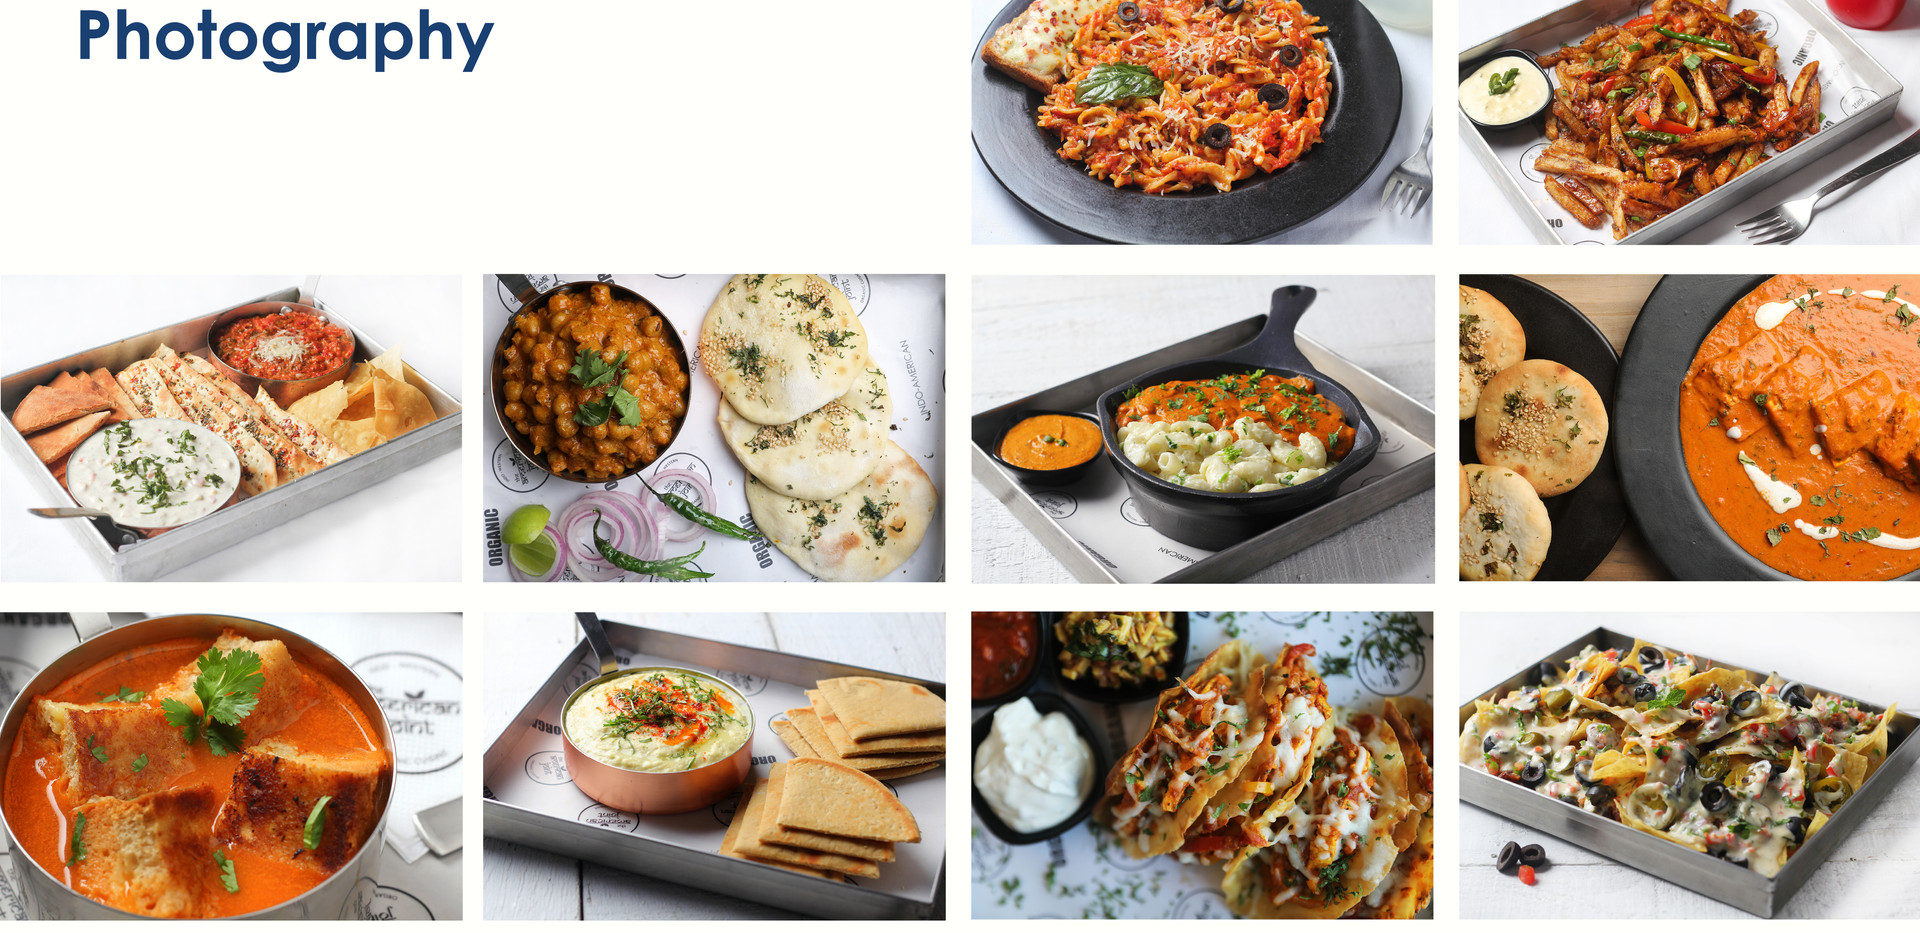 Digital Marketing Report for The American Joint - Food Photography by MarketinCrew